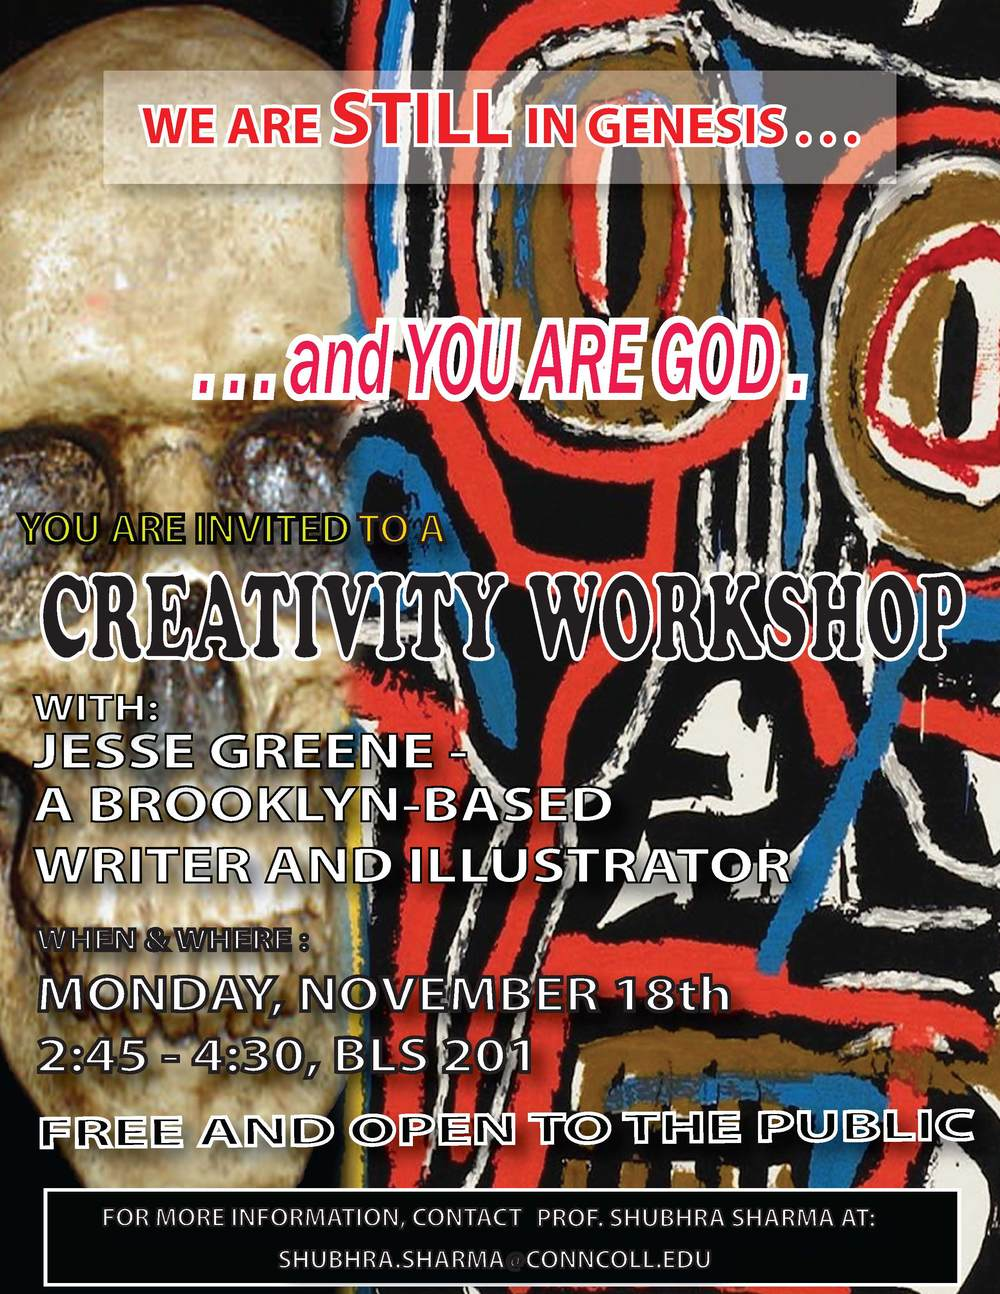 Creativity Workshop Poster.jpg